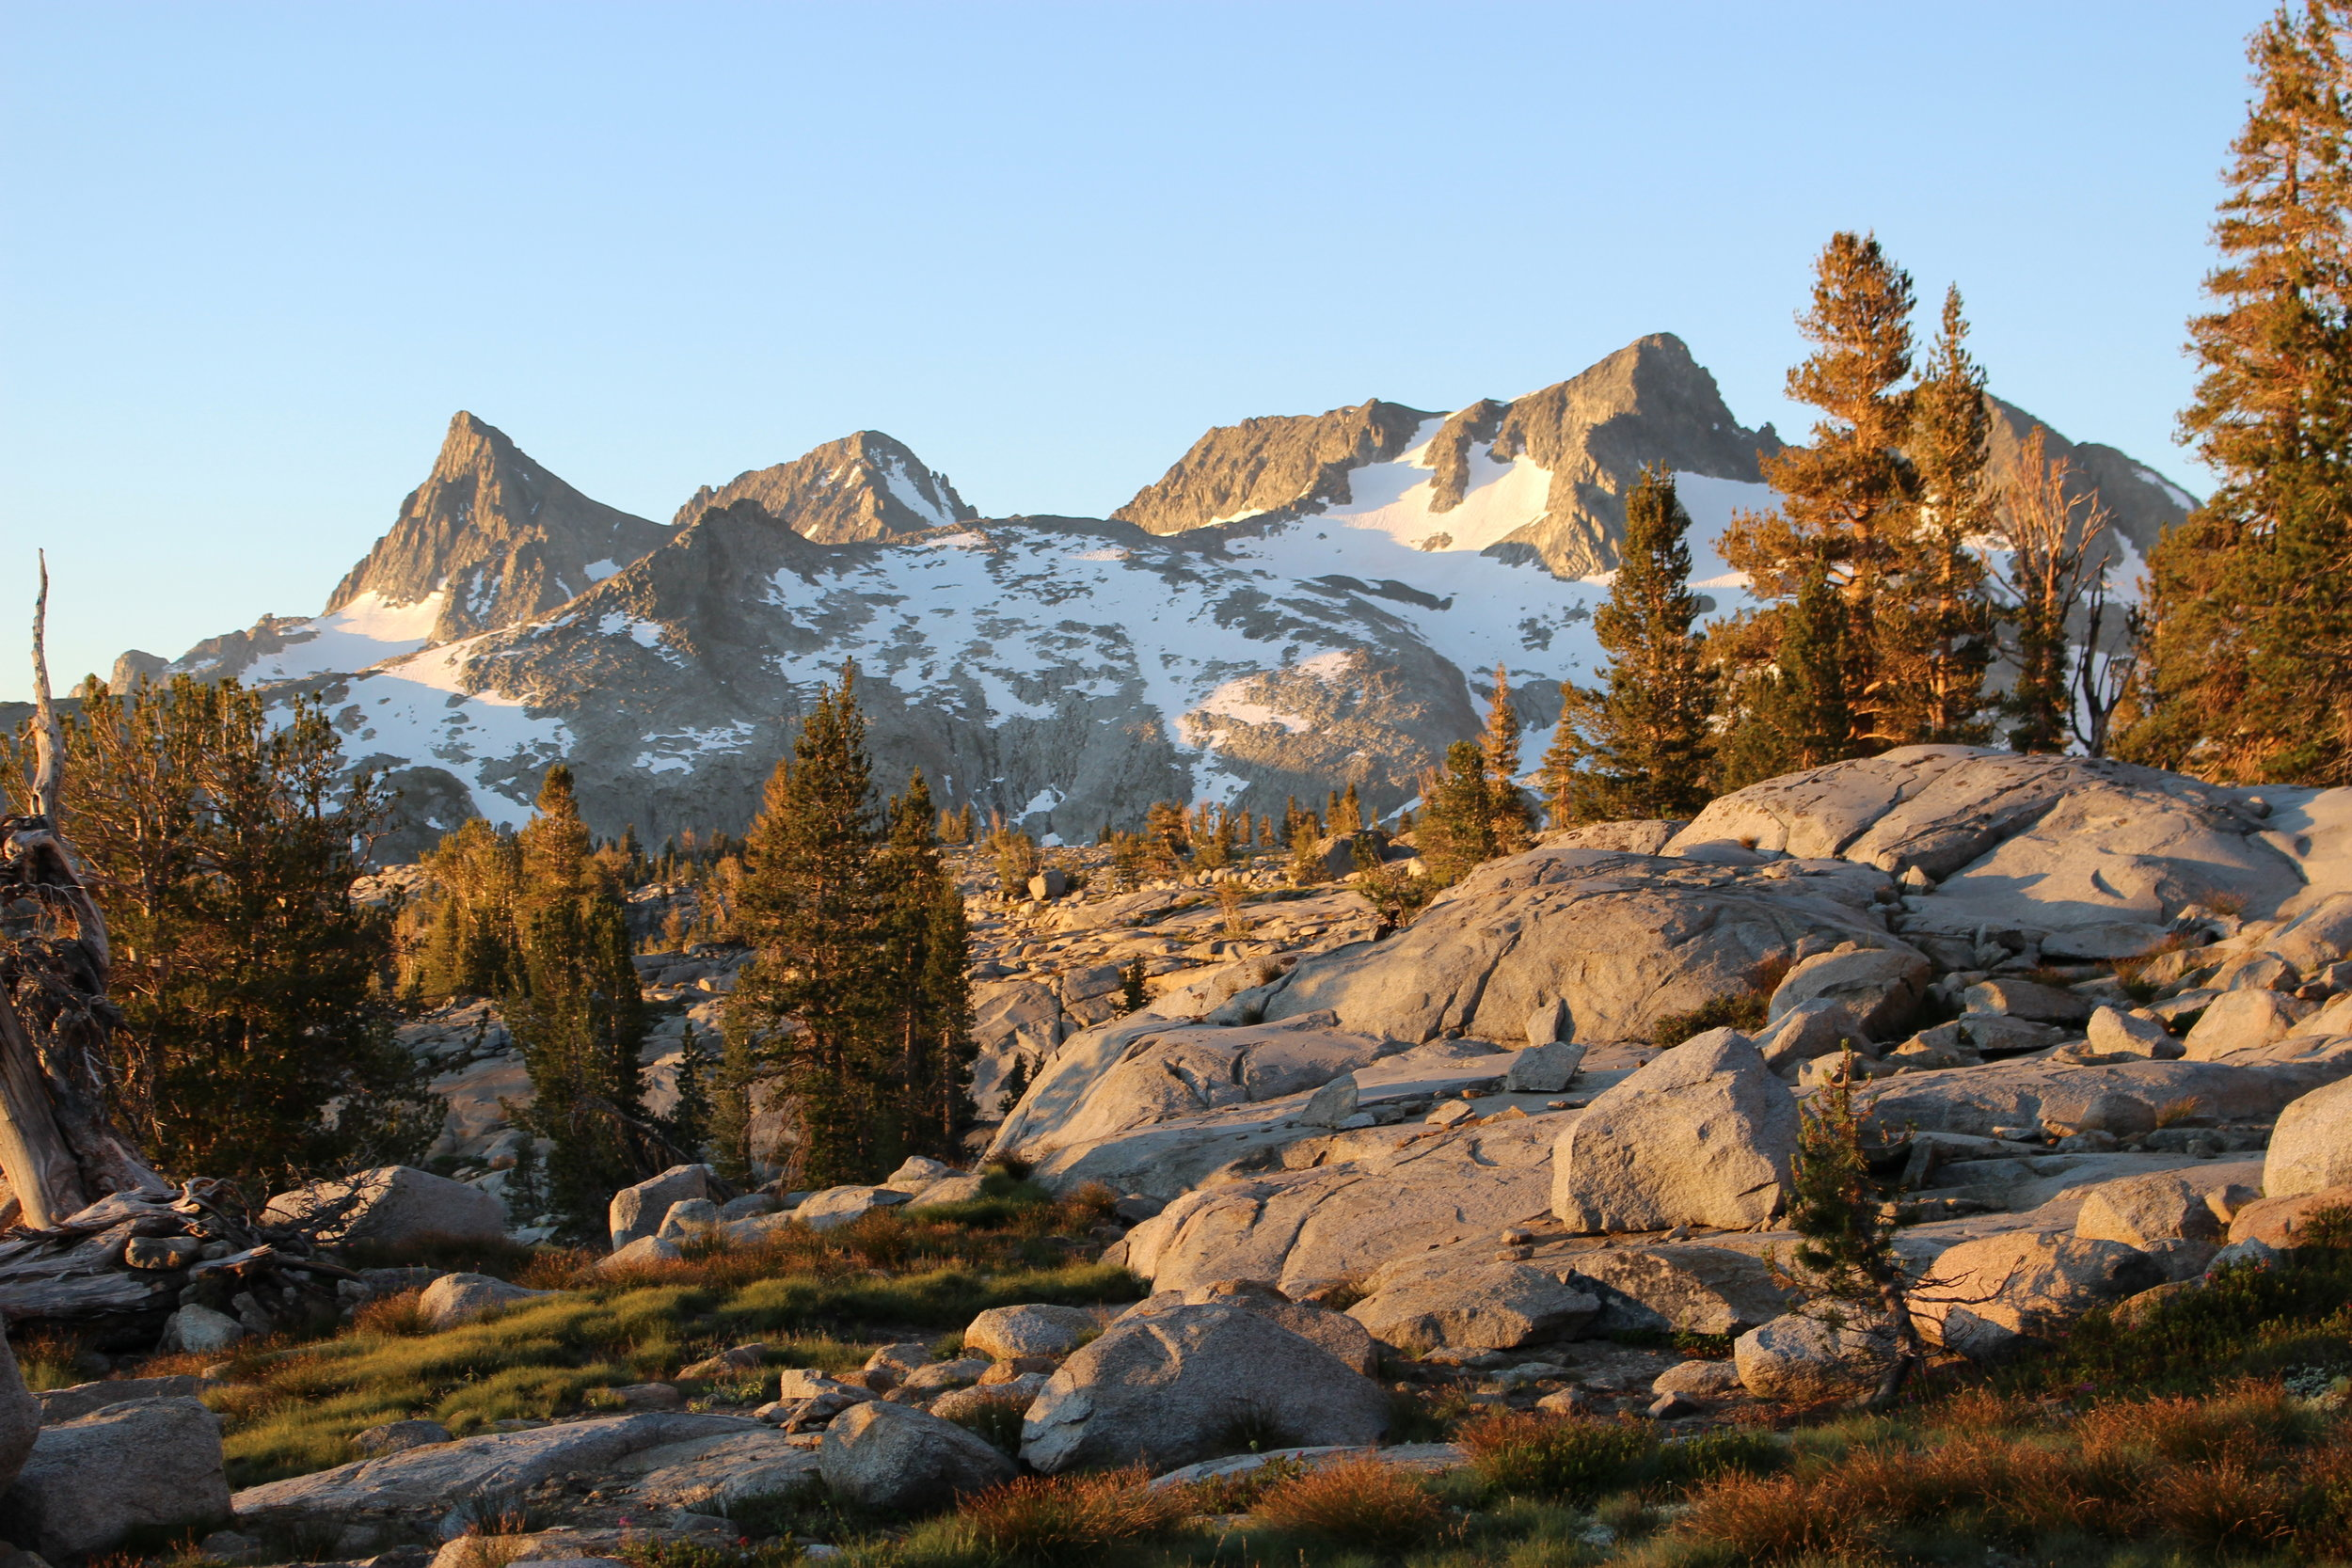 Sunrise John Muir Trail